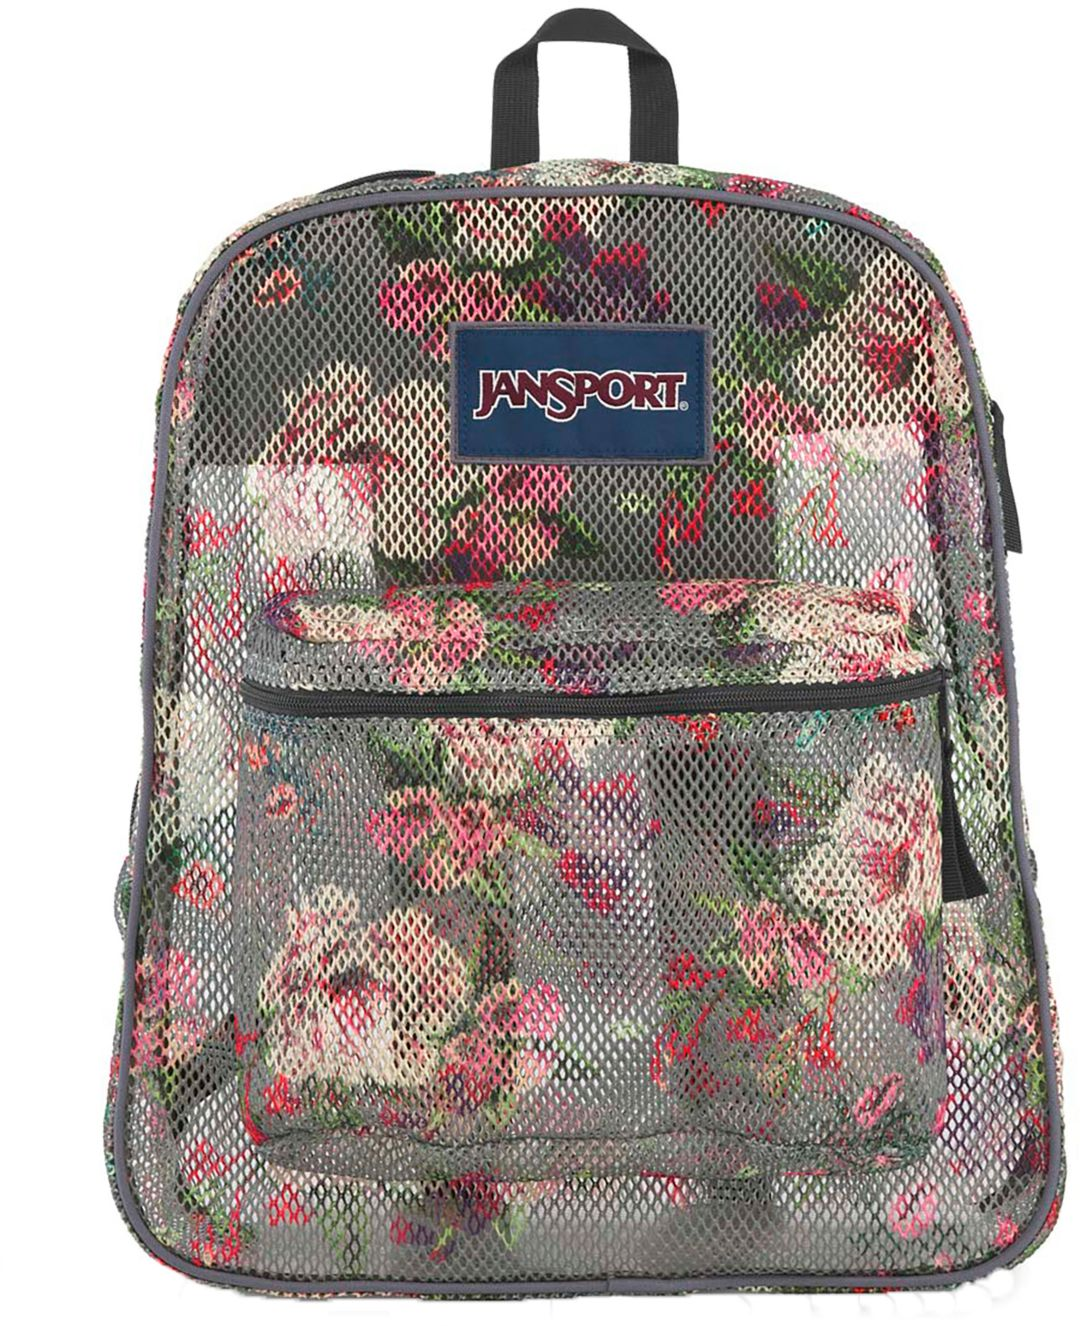 091f6e52756 JanSport Mesh Pack Backpack | DICK'S Sporting Goods